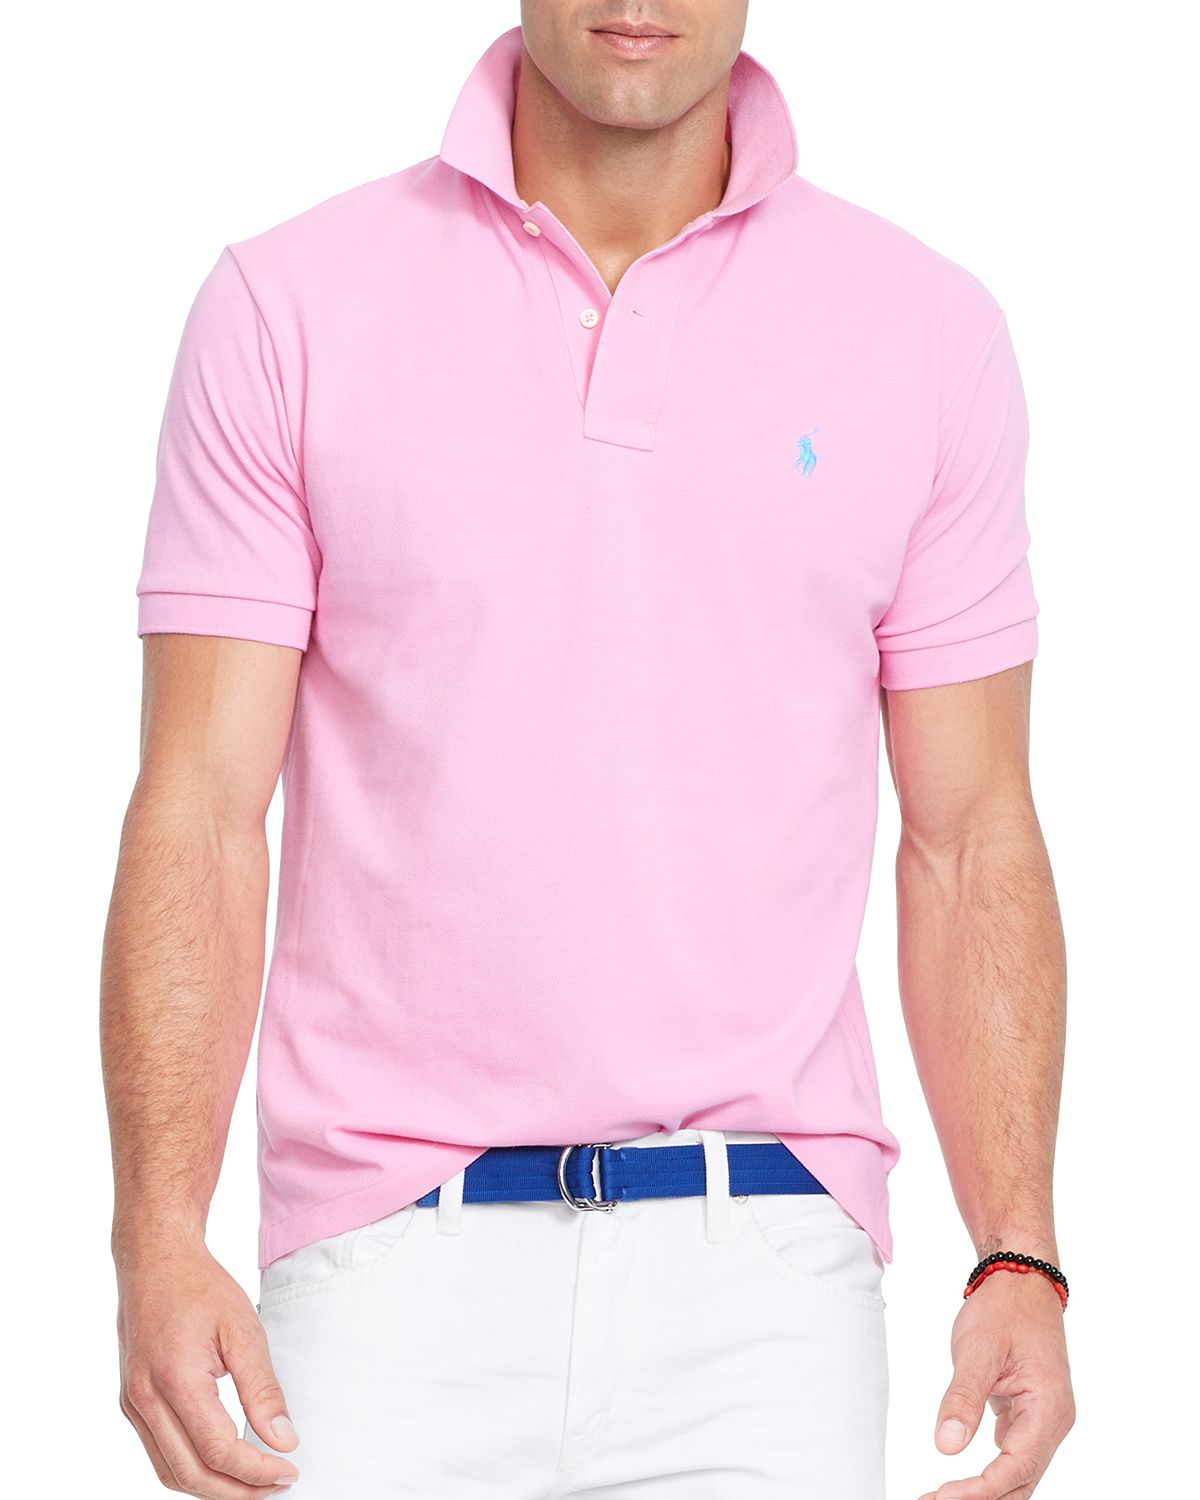 lyst ralph lauren polo classic mesh polo shirt regular fit in pink for men. Black Bedroom Furniture Sets. Home Design Ideas